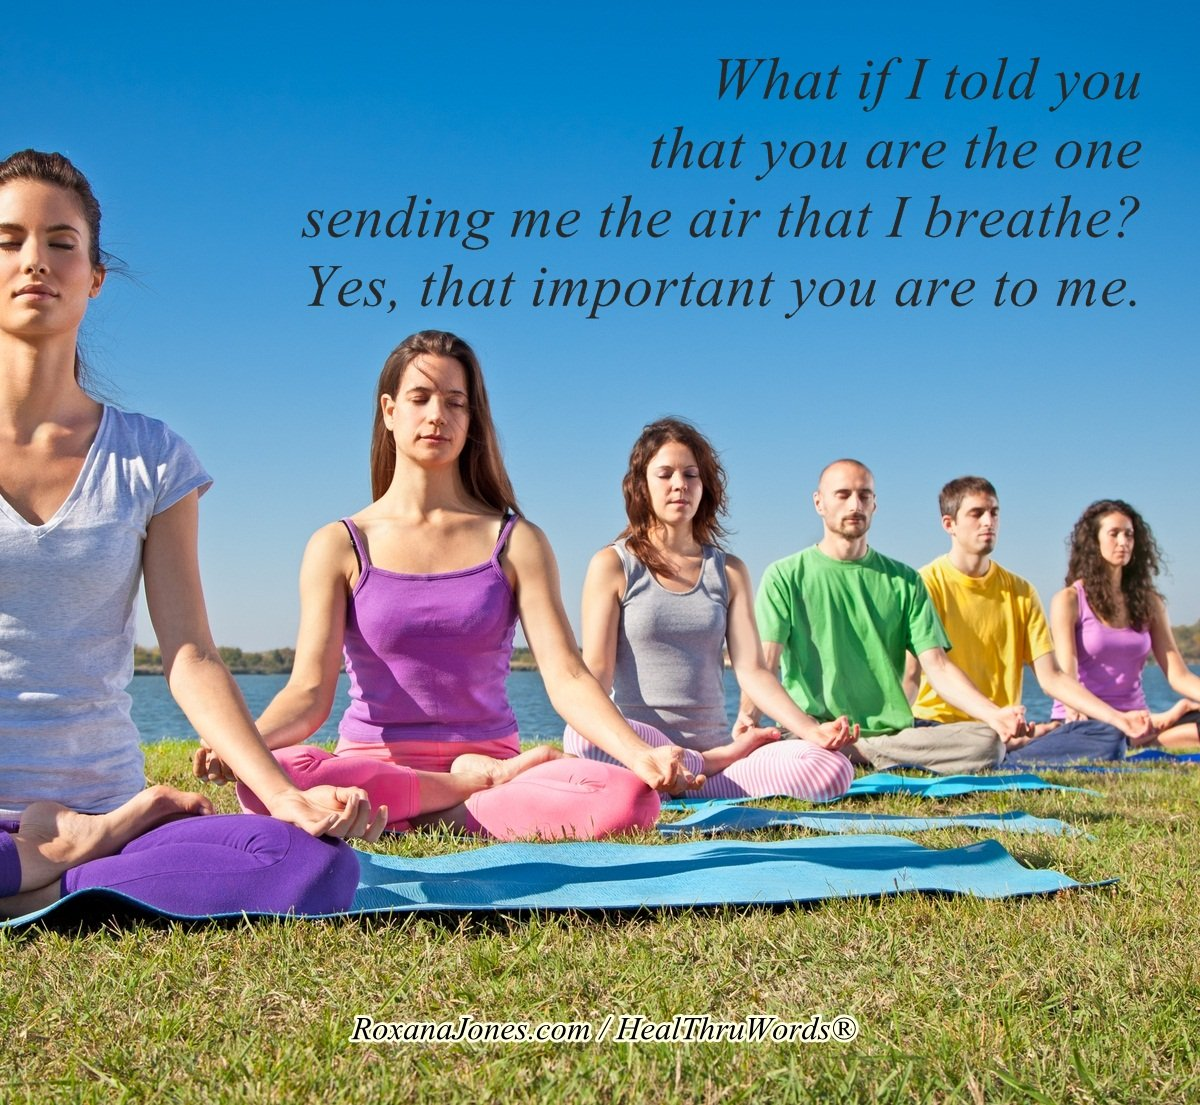 Inspirational Image: The Air that I Breathe